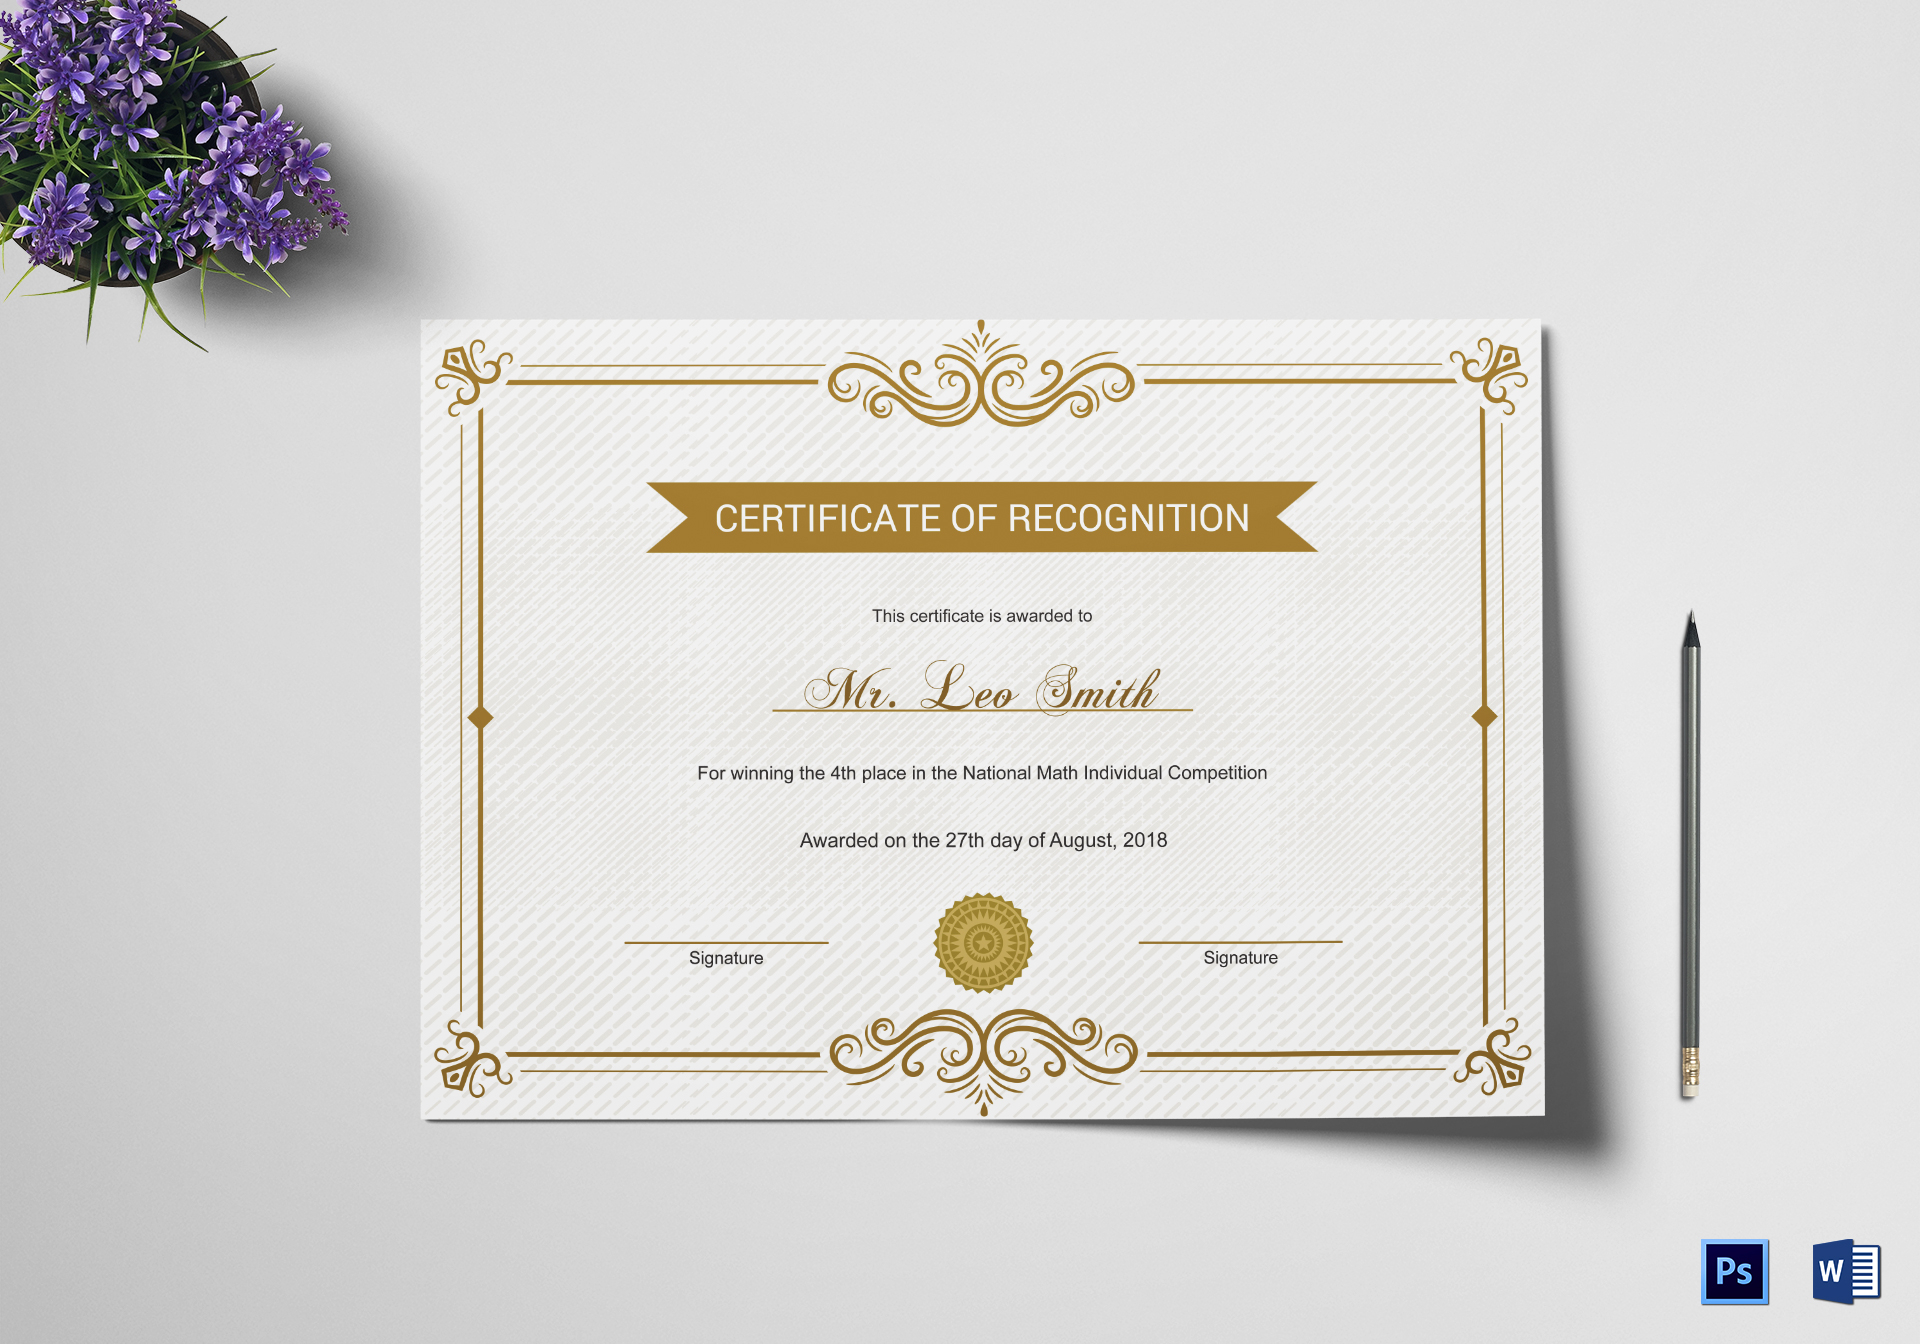 School Recognition Certificate Design Template In Psd Word